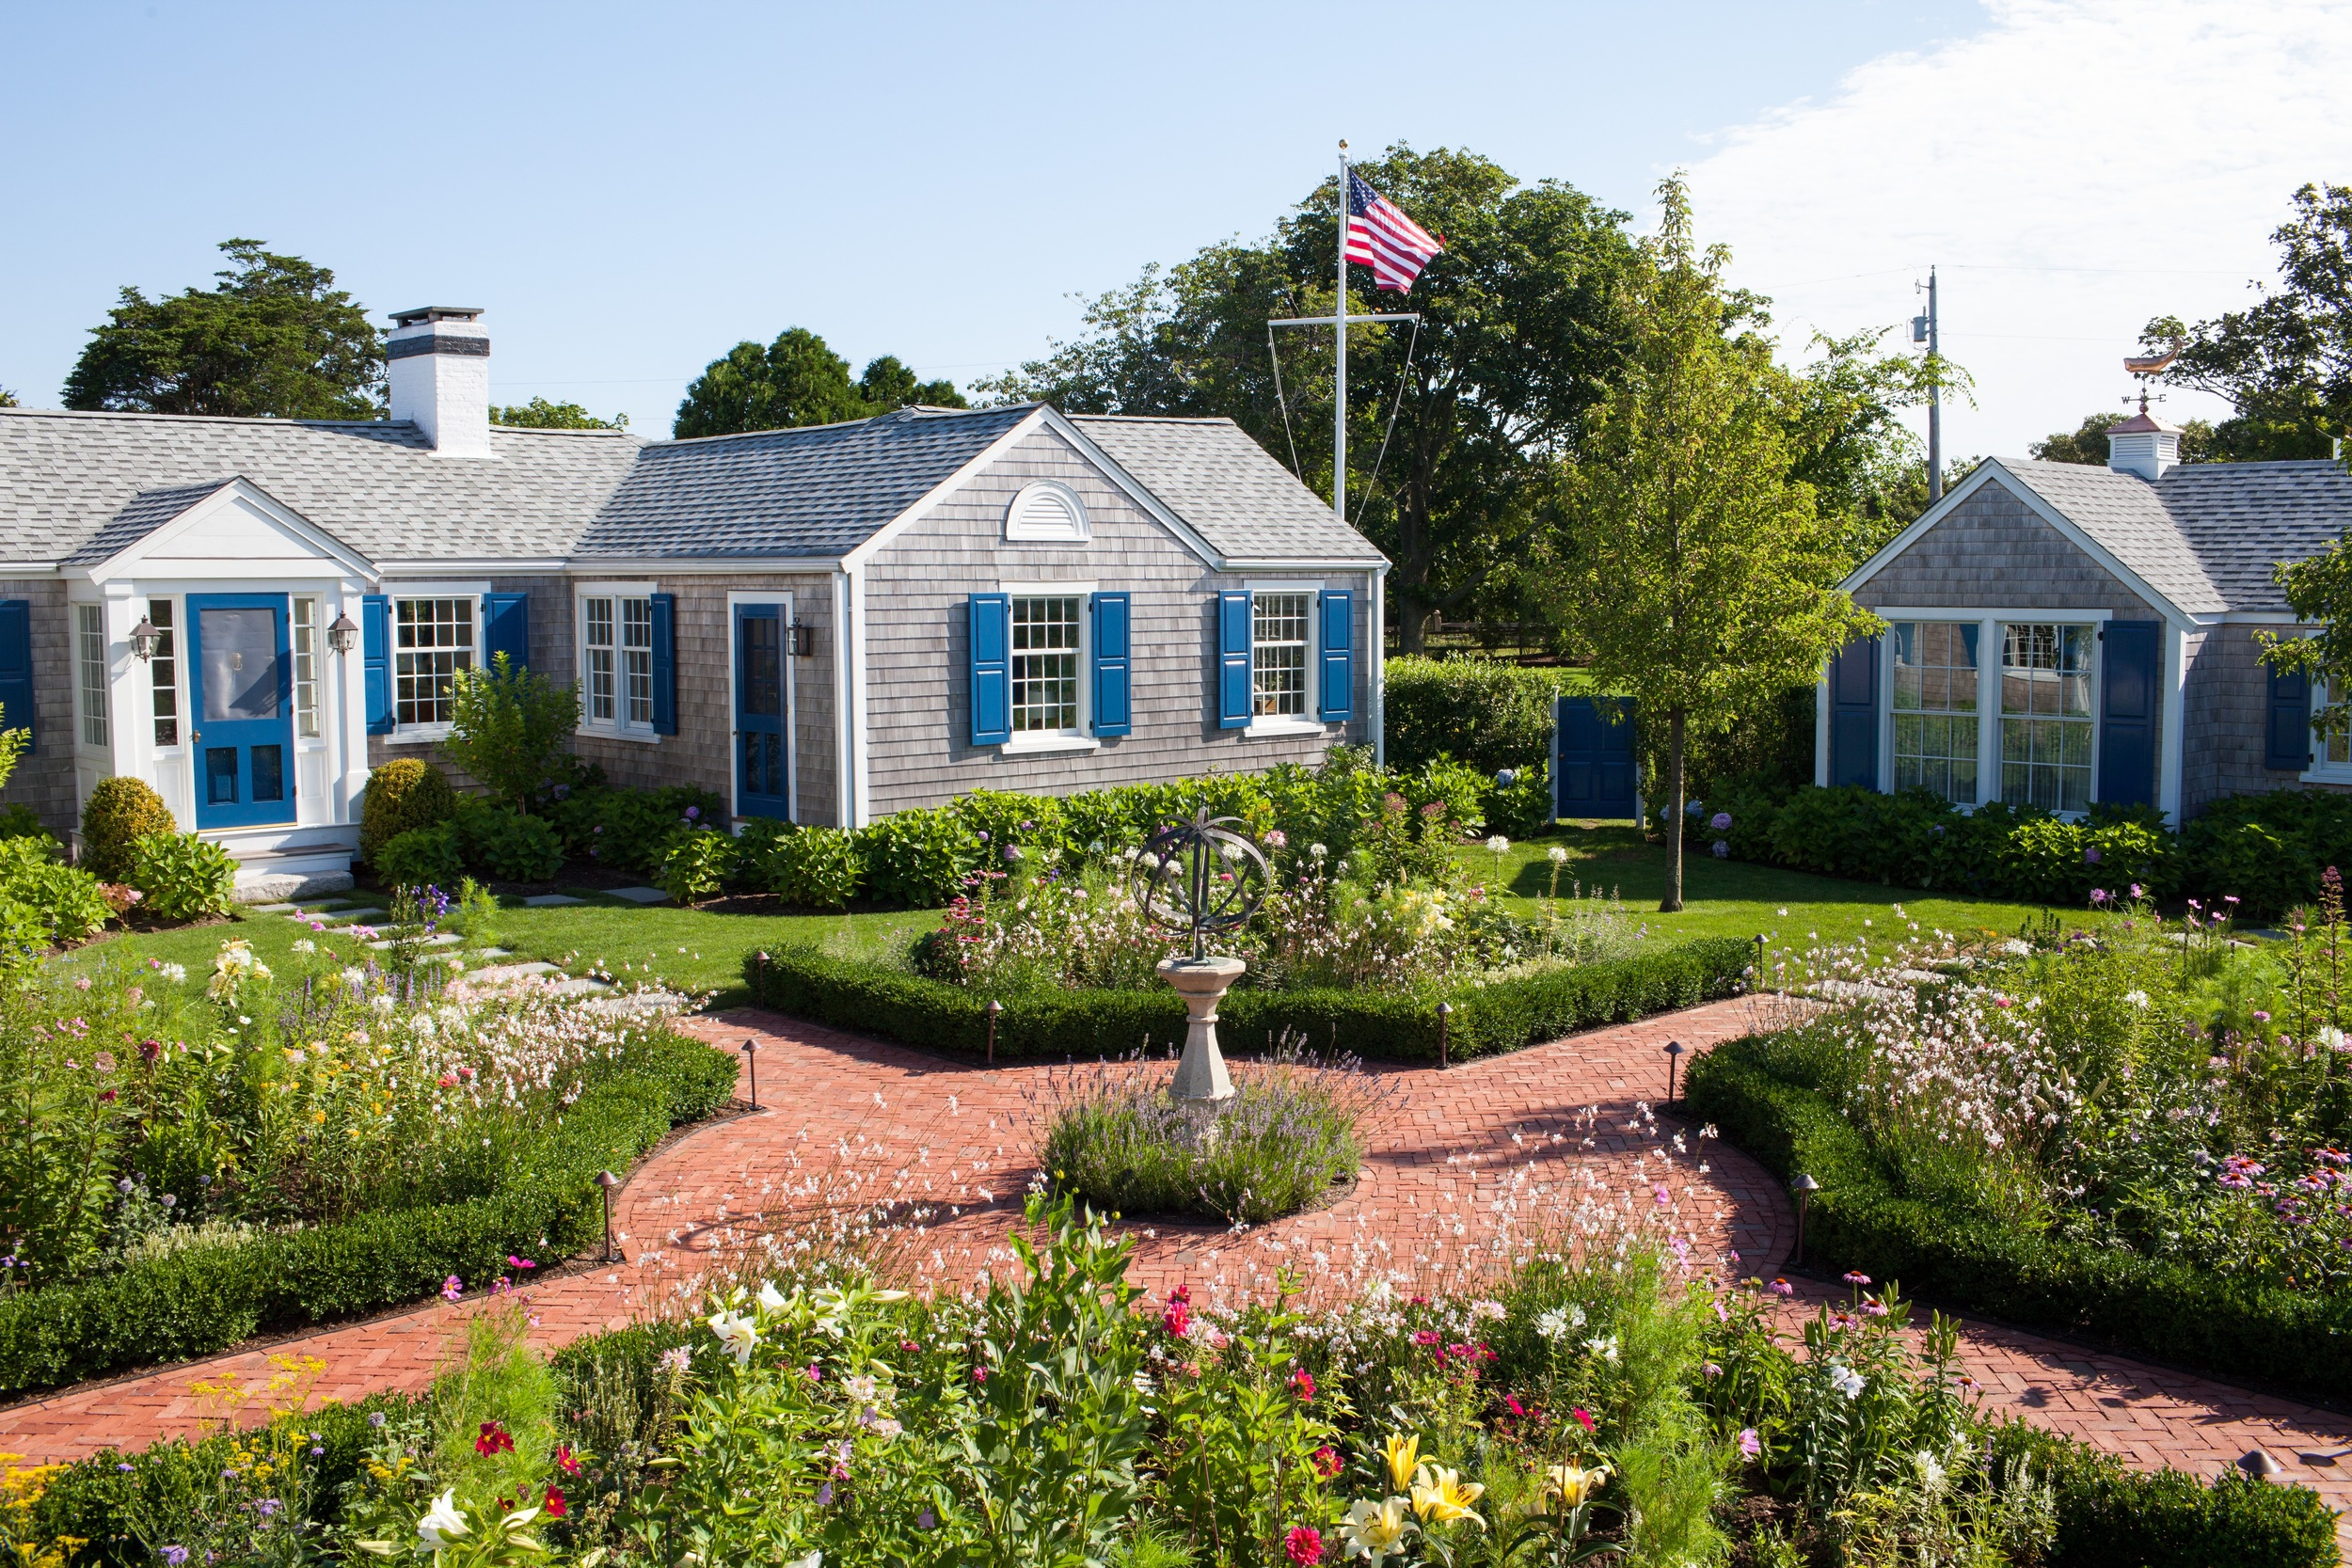 The gardens at our Nantucket home.